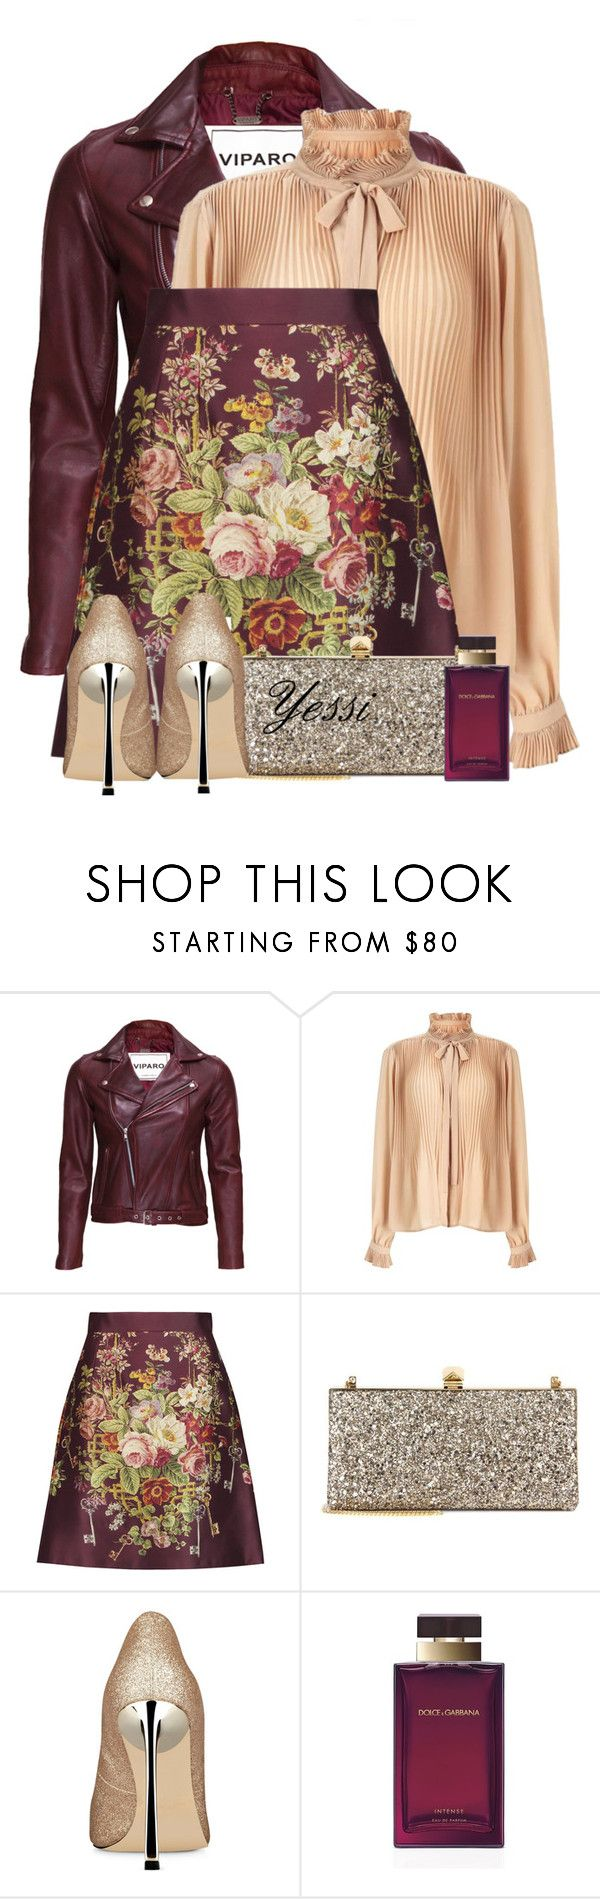 """""""~ 💕 D&G Satin Mini Skirt 💕 ~"""" by pretty-fashion-designs ❤ liked on Polyvore featuring VIPARO, Miss Selfridge, Dolce&Gabbana, Jimmy Choo and Nine West"""